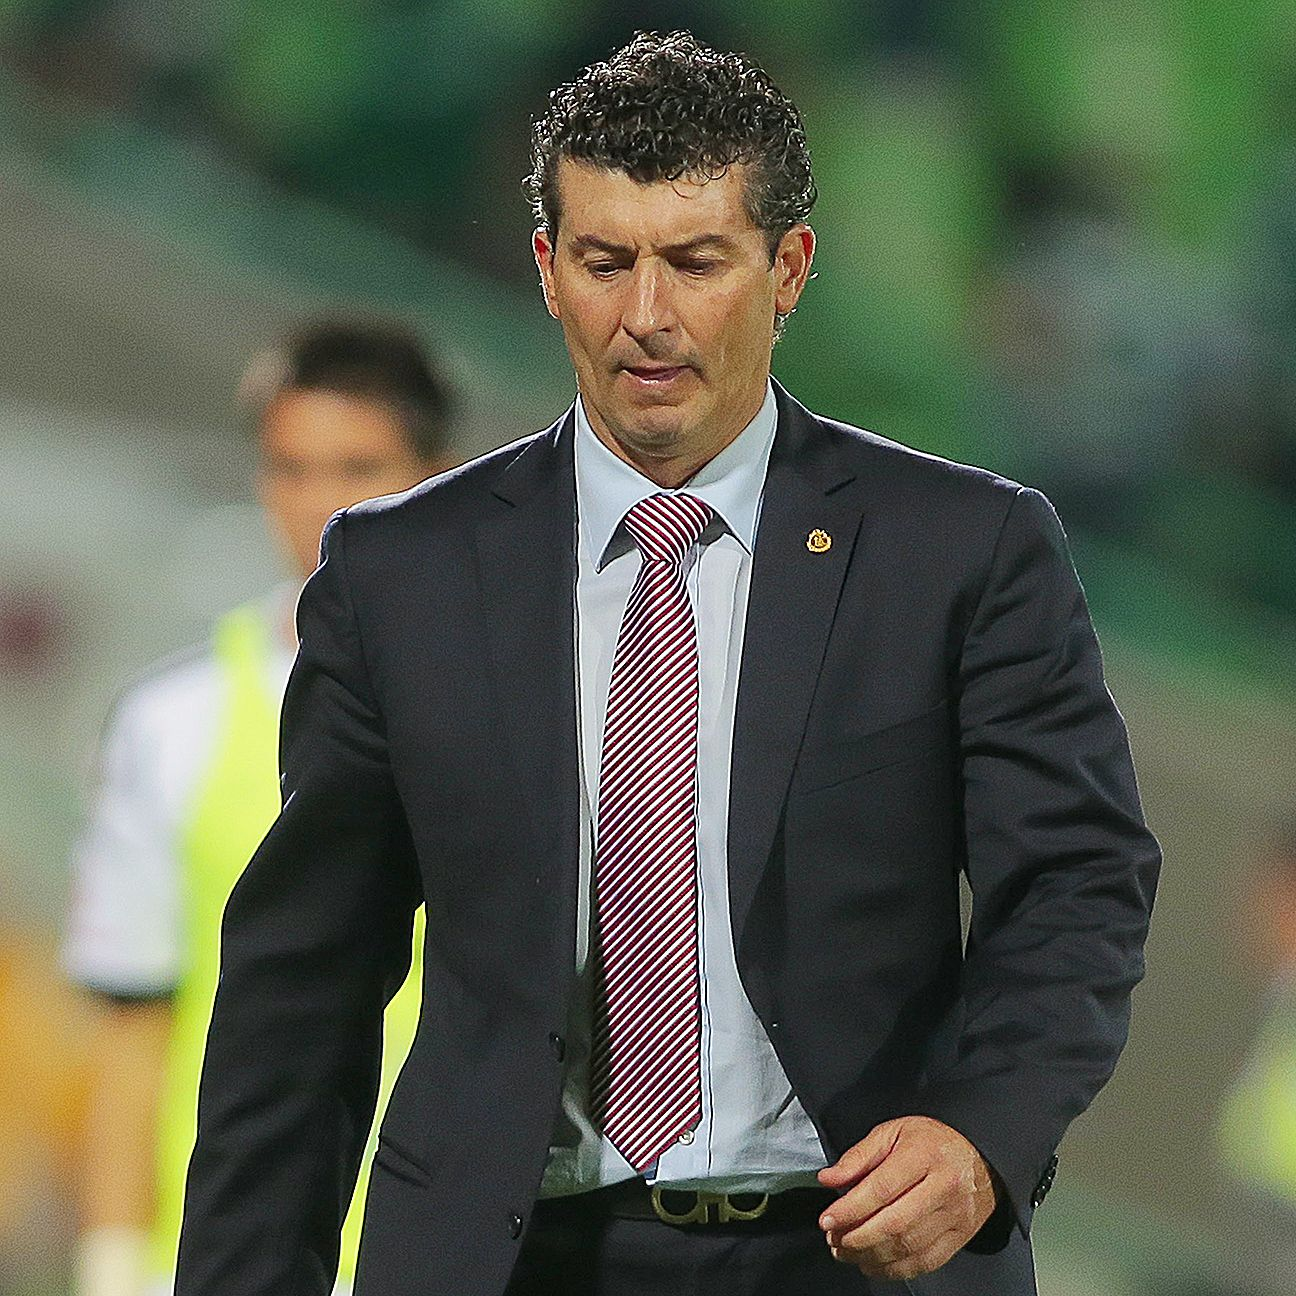 With each defeat, the relegation pressure gets ratcheted up on Chivas Guadalajara head coach Jose Manuel